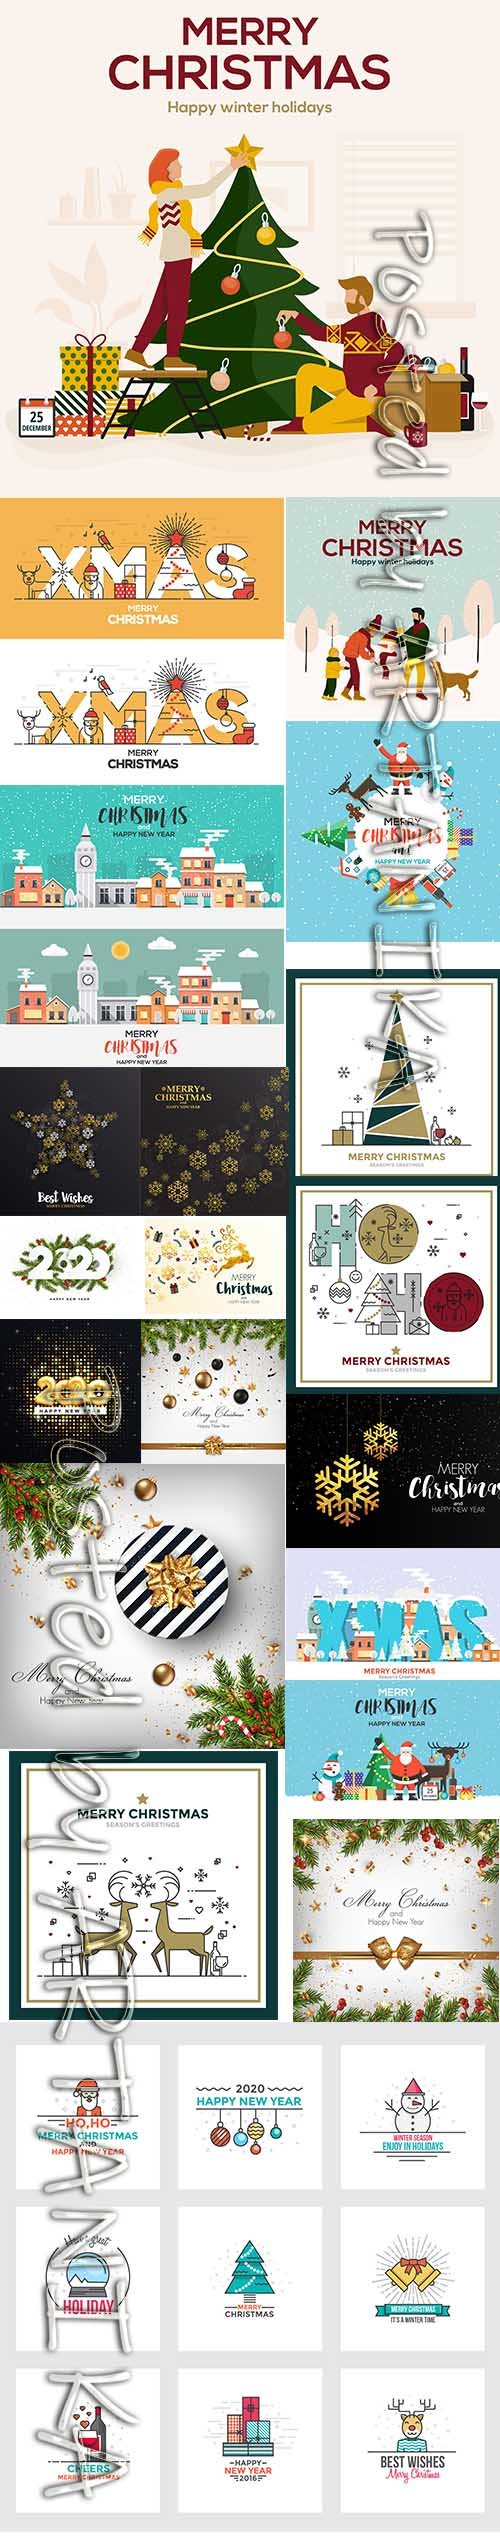 Merry Christmas and New Year 2020 Vector Illustrations Pack Vol 15